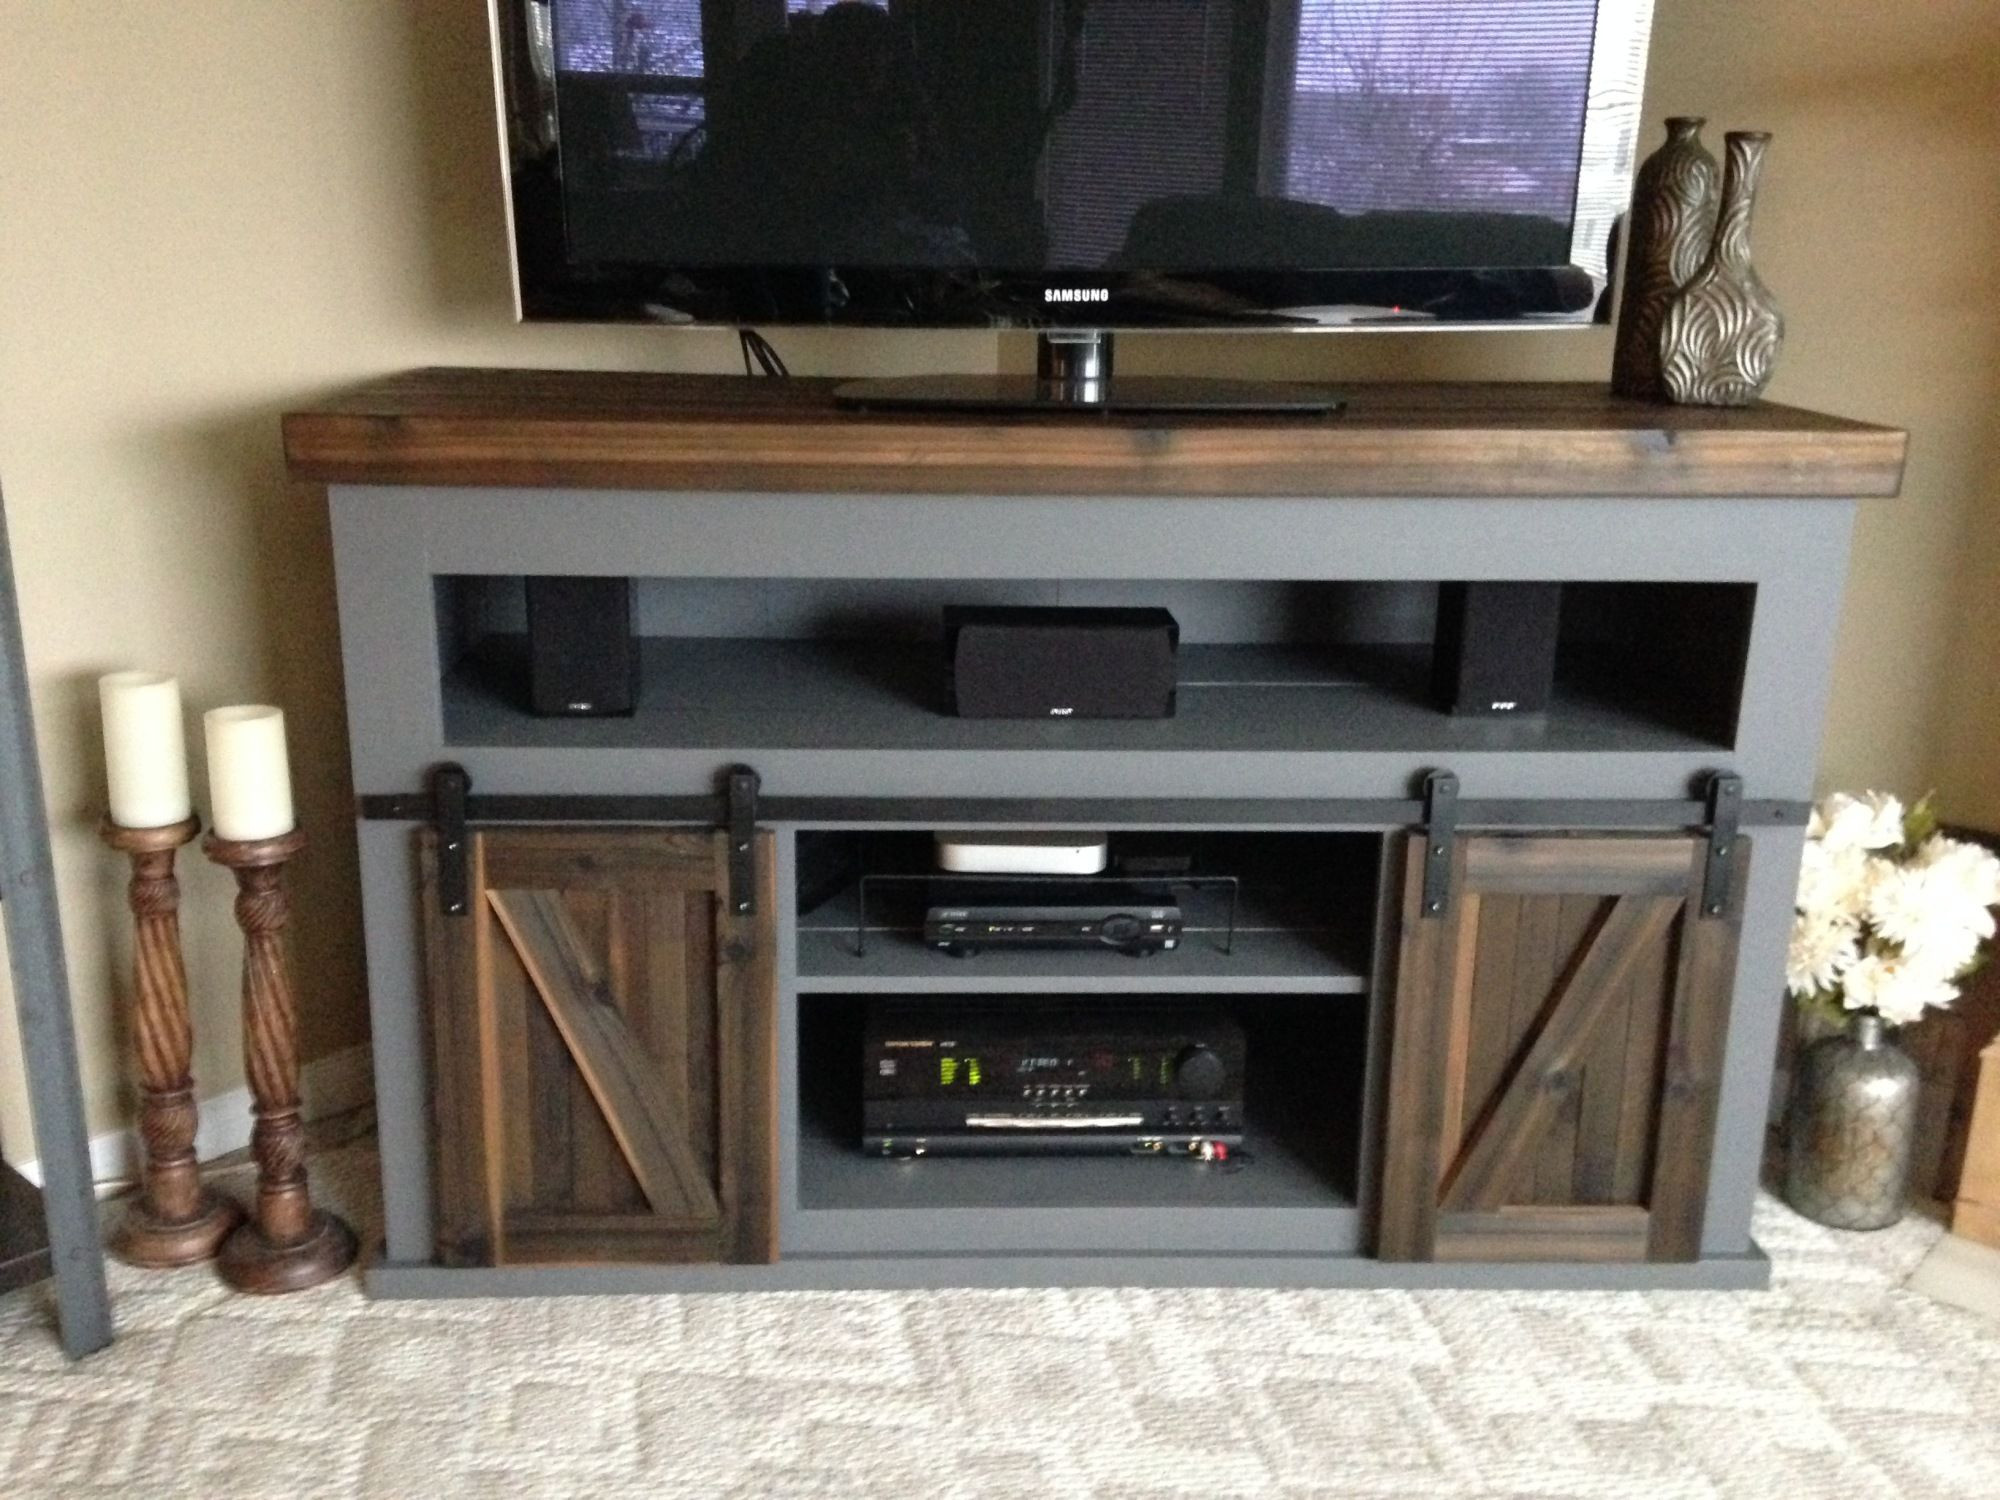 Best ideas about Tv Stand Ideas DIY . Save or Pin 19 Amazing Diy TV Stand Ideas You can Build Right Now Now.